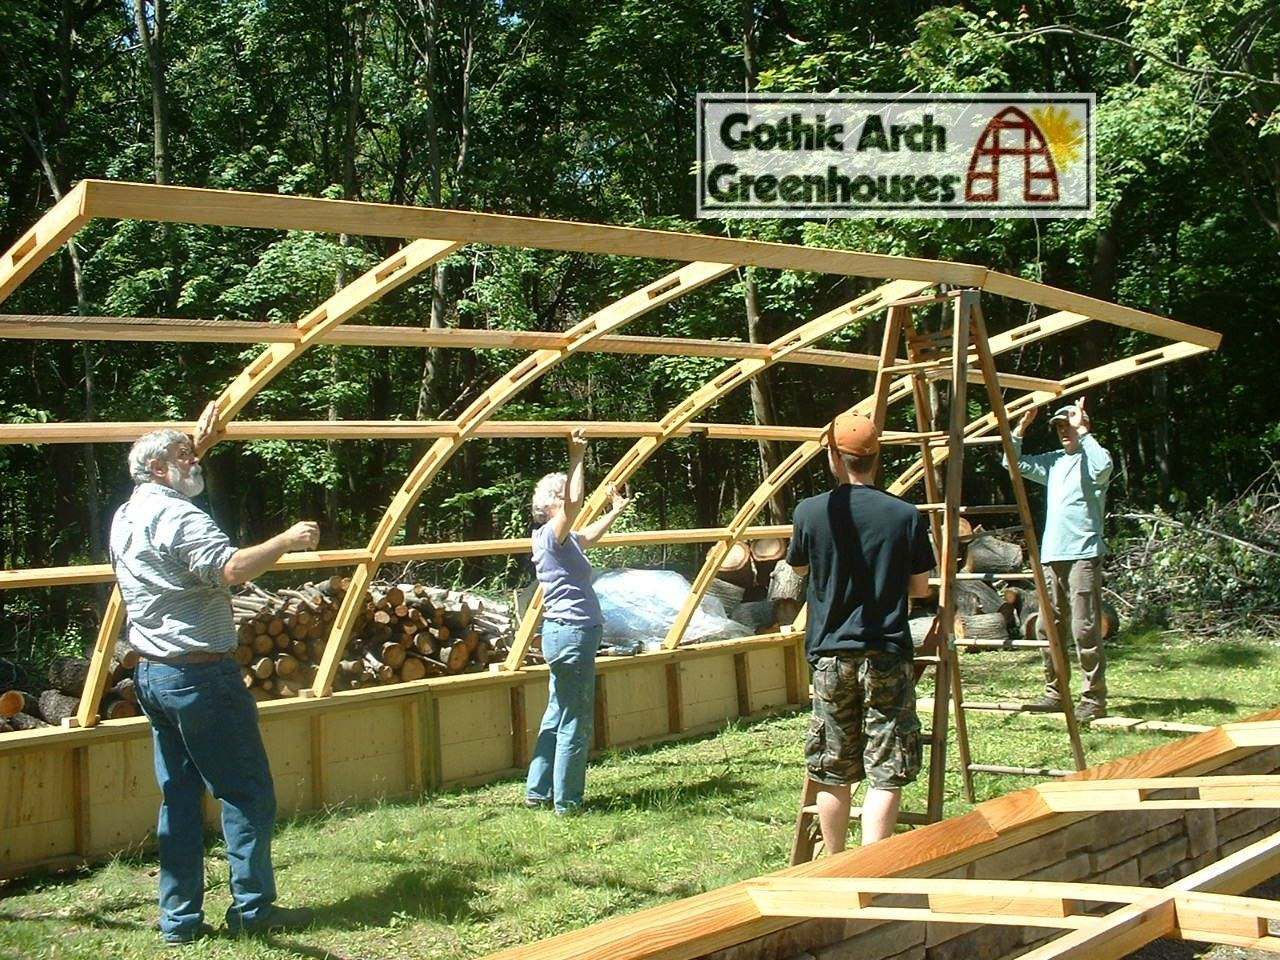 5 Benefits of a Gothic Arch-Style Greenhouse | Gothic, Green houses on quonset greenhouse plans, glass greenhouse plans, storage greenhouse plans, a-frame greenhouse plans, basic greenhouse plans, garden arch plans, underground greenhouse plans, home greenhouse plans, pit greenhouse plans, gothic style greenhouse plans, inexpensive two-story house plans, attached greenhouse plans, best greenhouse plans, earth sheltered greenhouse plans, unique greenhouse plans, barn greenhouse plans, vintage greenhouse plans, cheap greenhouse plans, diy greenhouse plans, japanese greenhouse plans,